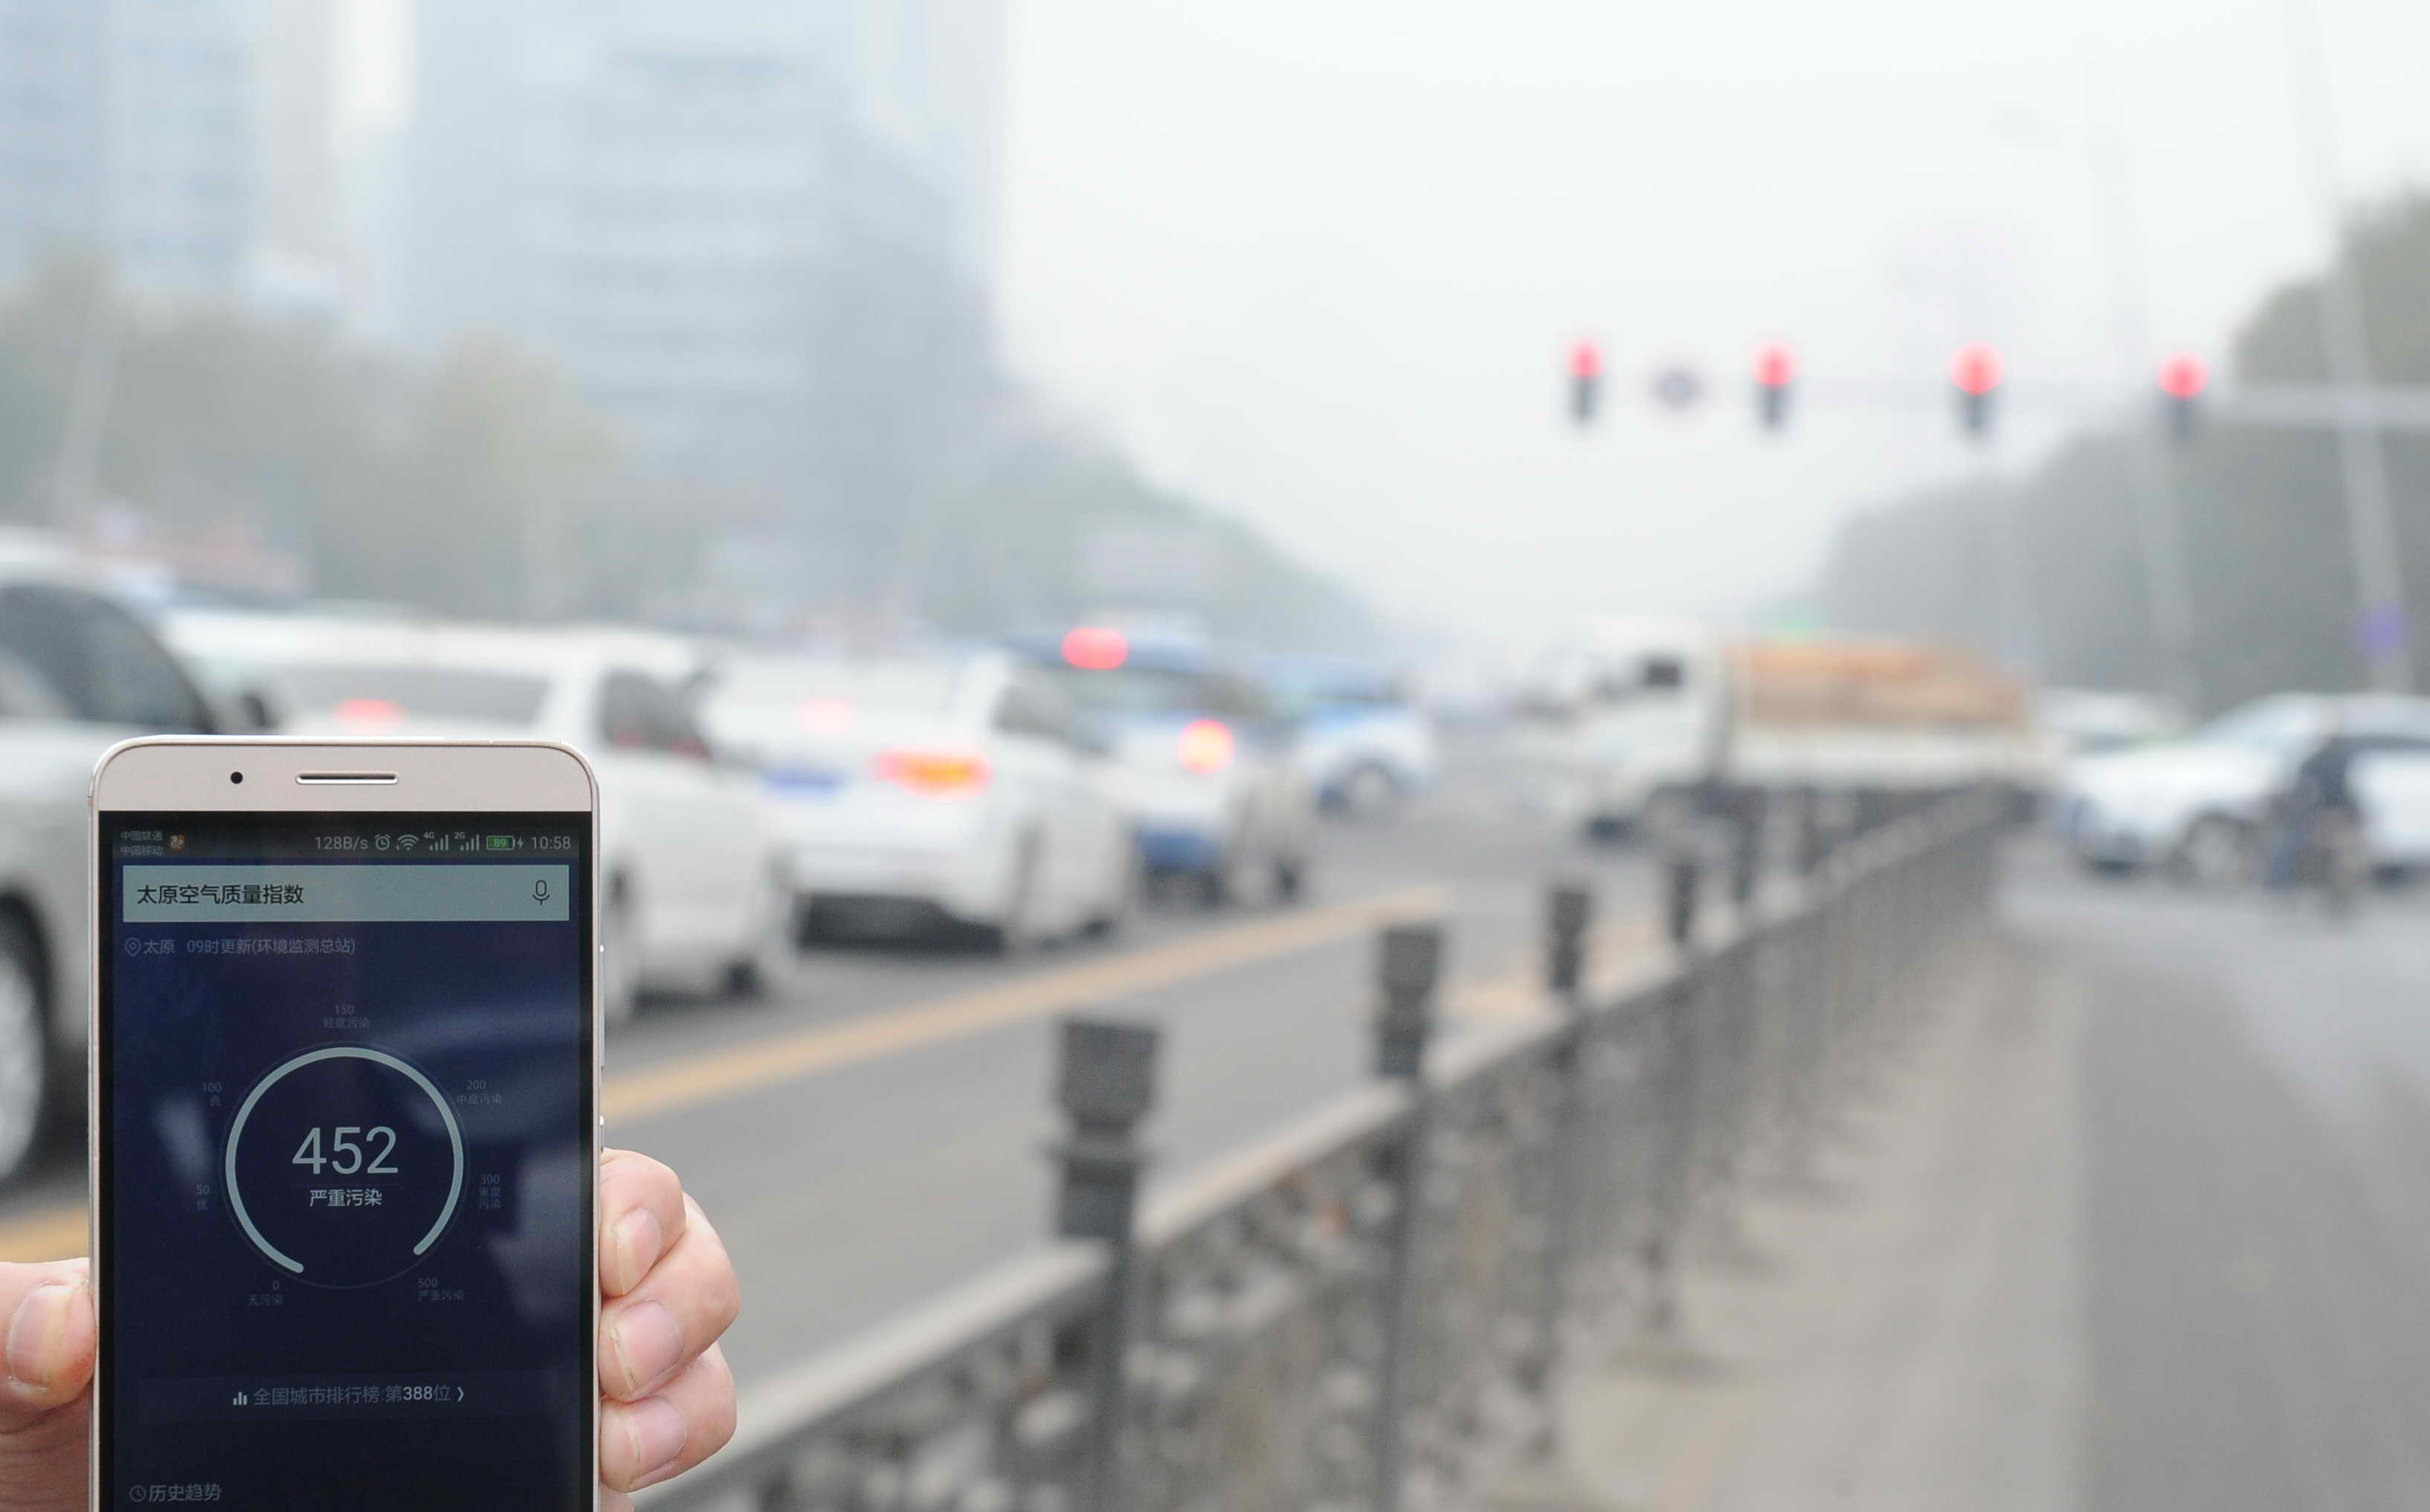 Taiyuan coal ban is expected to cut 2 million tons of coal used for heating in the northern Chinese city, which is notorious for its awful air quality linked to burning the fossil fuel. Above, a pedestrian in Taiyuan, Shanxi province, holds up a smartphone showing the Air Quality Index reading of 452 in the city just shy of 11 a.m. on Nov. 18, 2016. Typically, the index, which measures the level of air pollution, is considered hazardous if it exceeds 300. Photo: IC